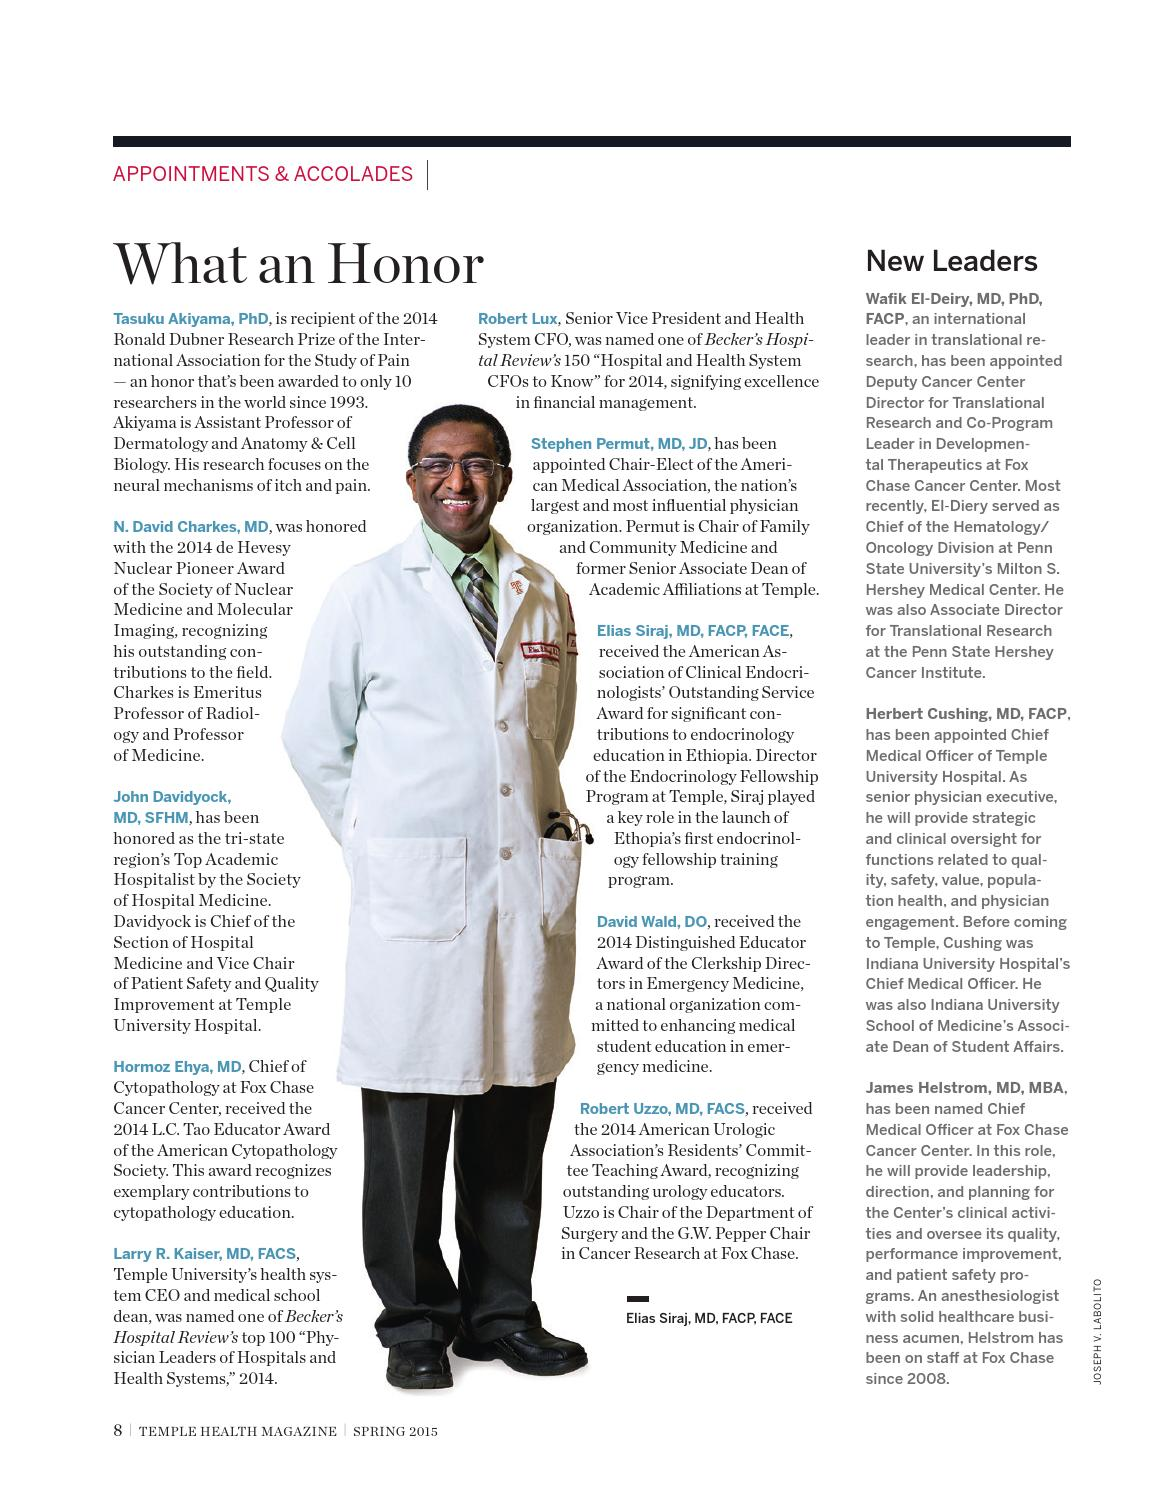 Temple Health - Temple Health Magazine - Spring 2015 by